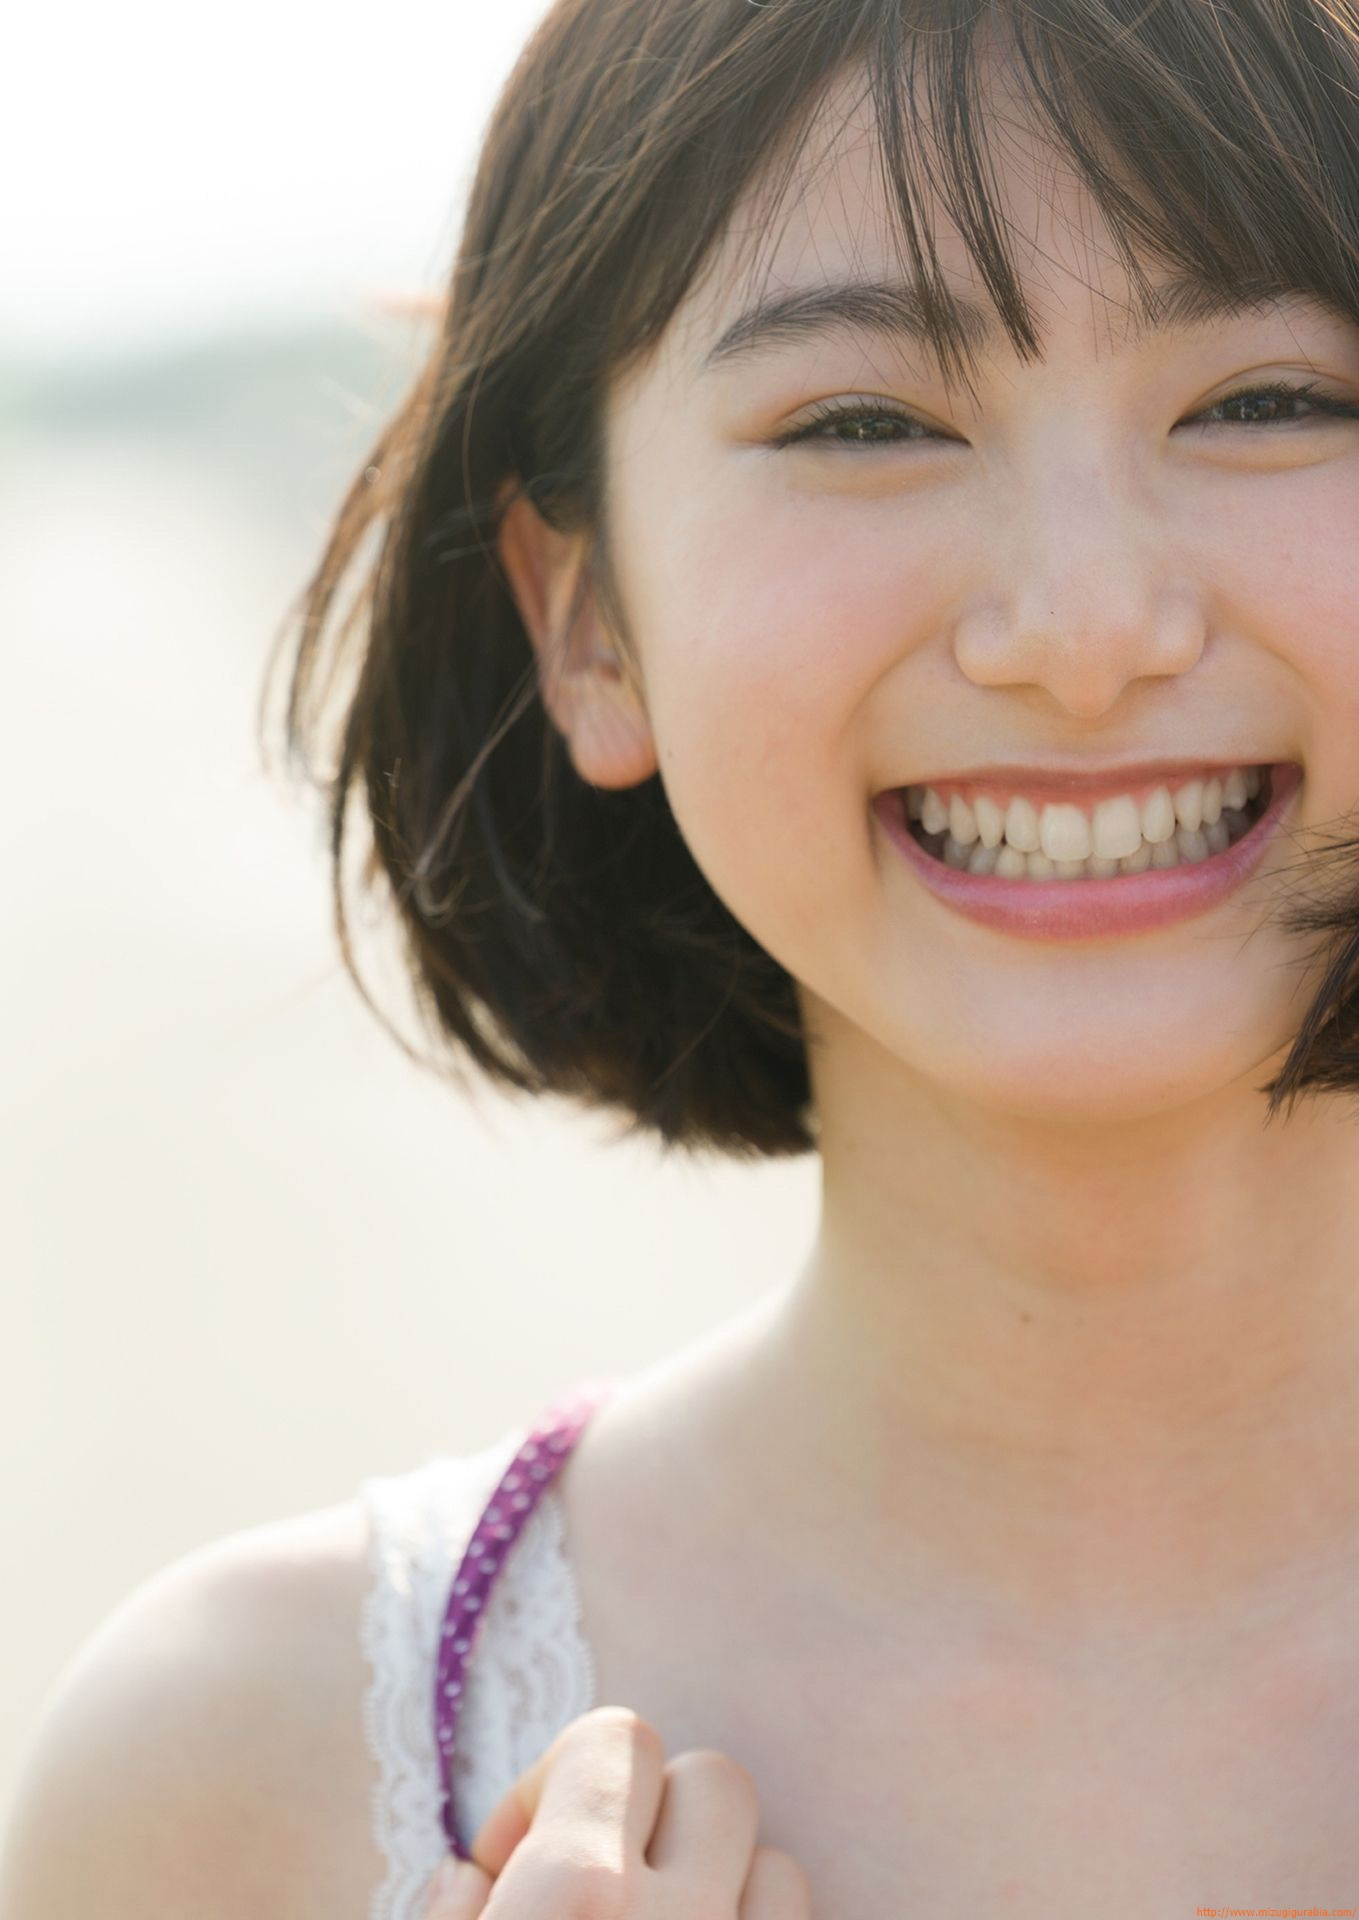 First swimsuit gravure of a beautiful girl of 16 years old topic032